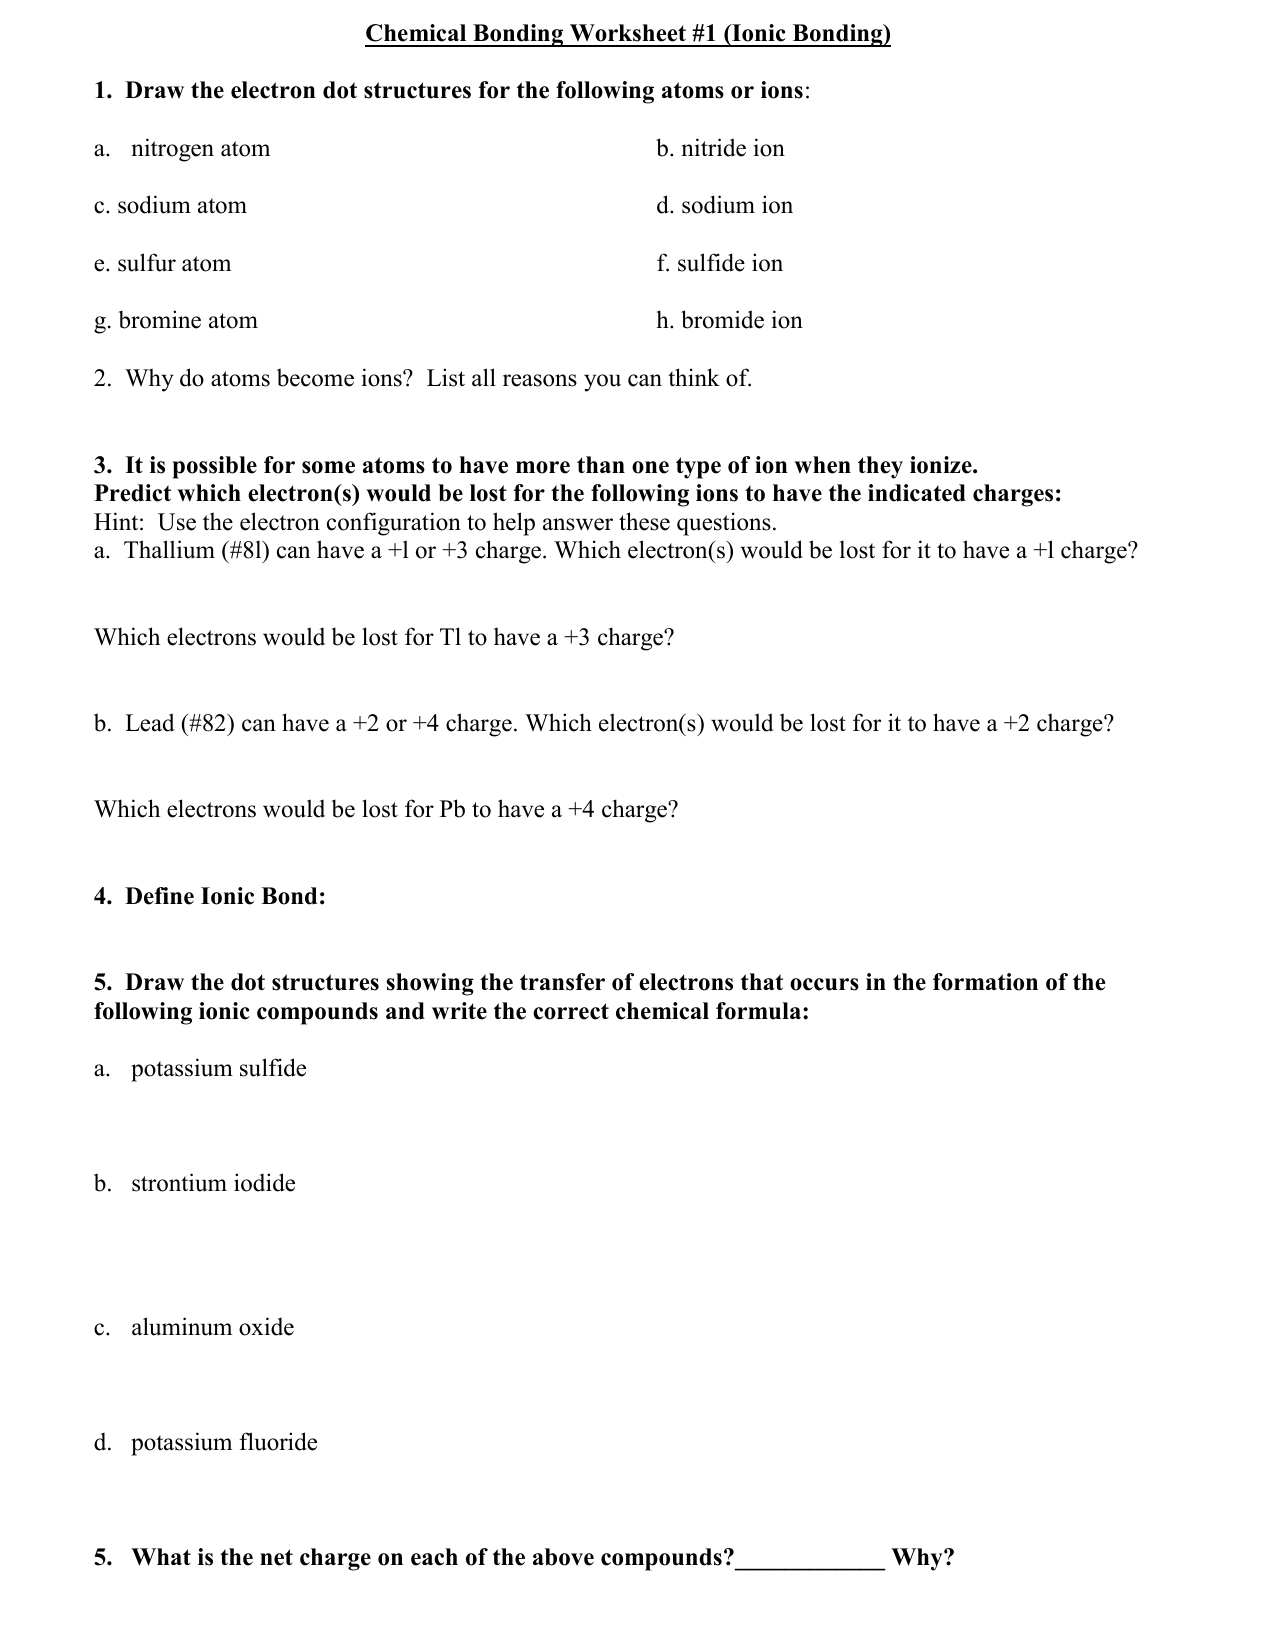 Chemical Bonding Worksheet 1 Ionic Bonding – Ions Worksheet